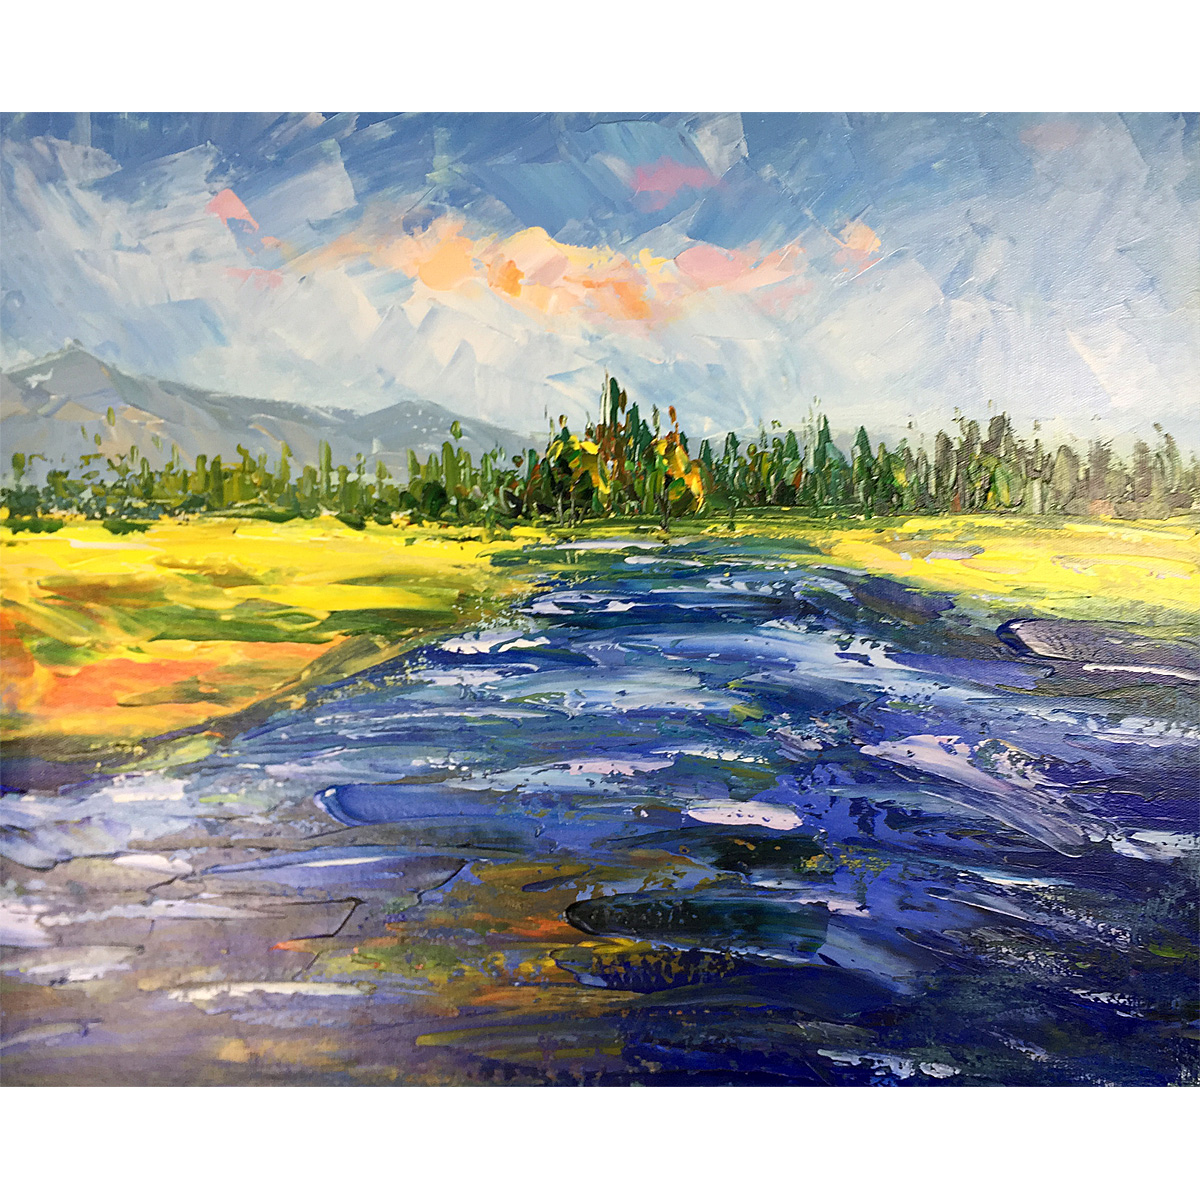 Modern Oil Paintings Clear River Scenery Abstract Painting on Canvas Hand Painted Wall Art Wood